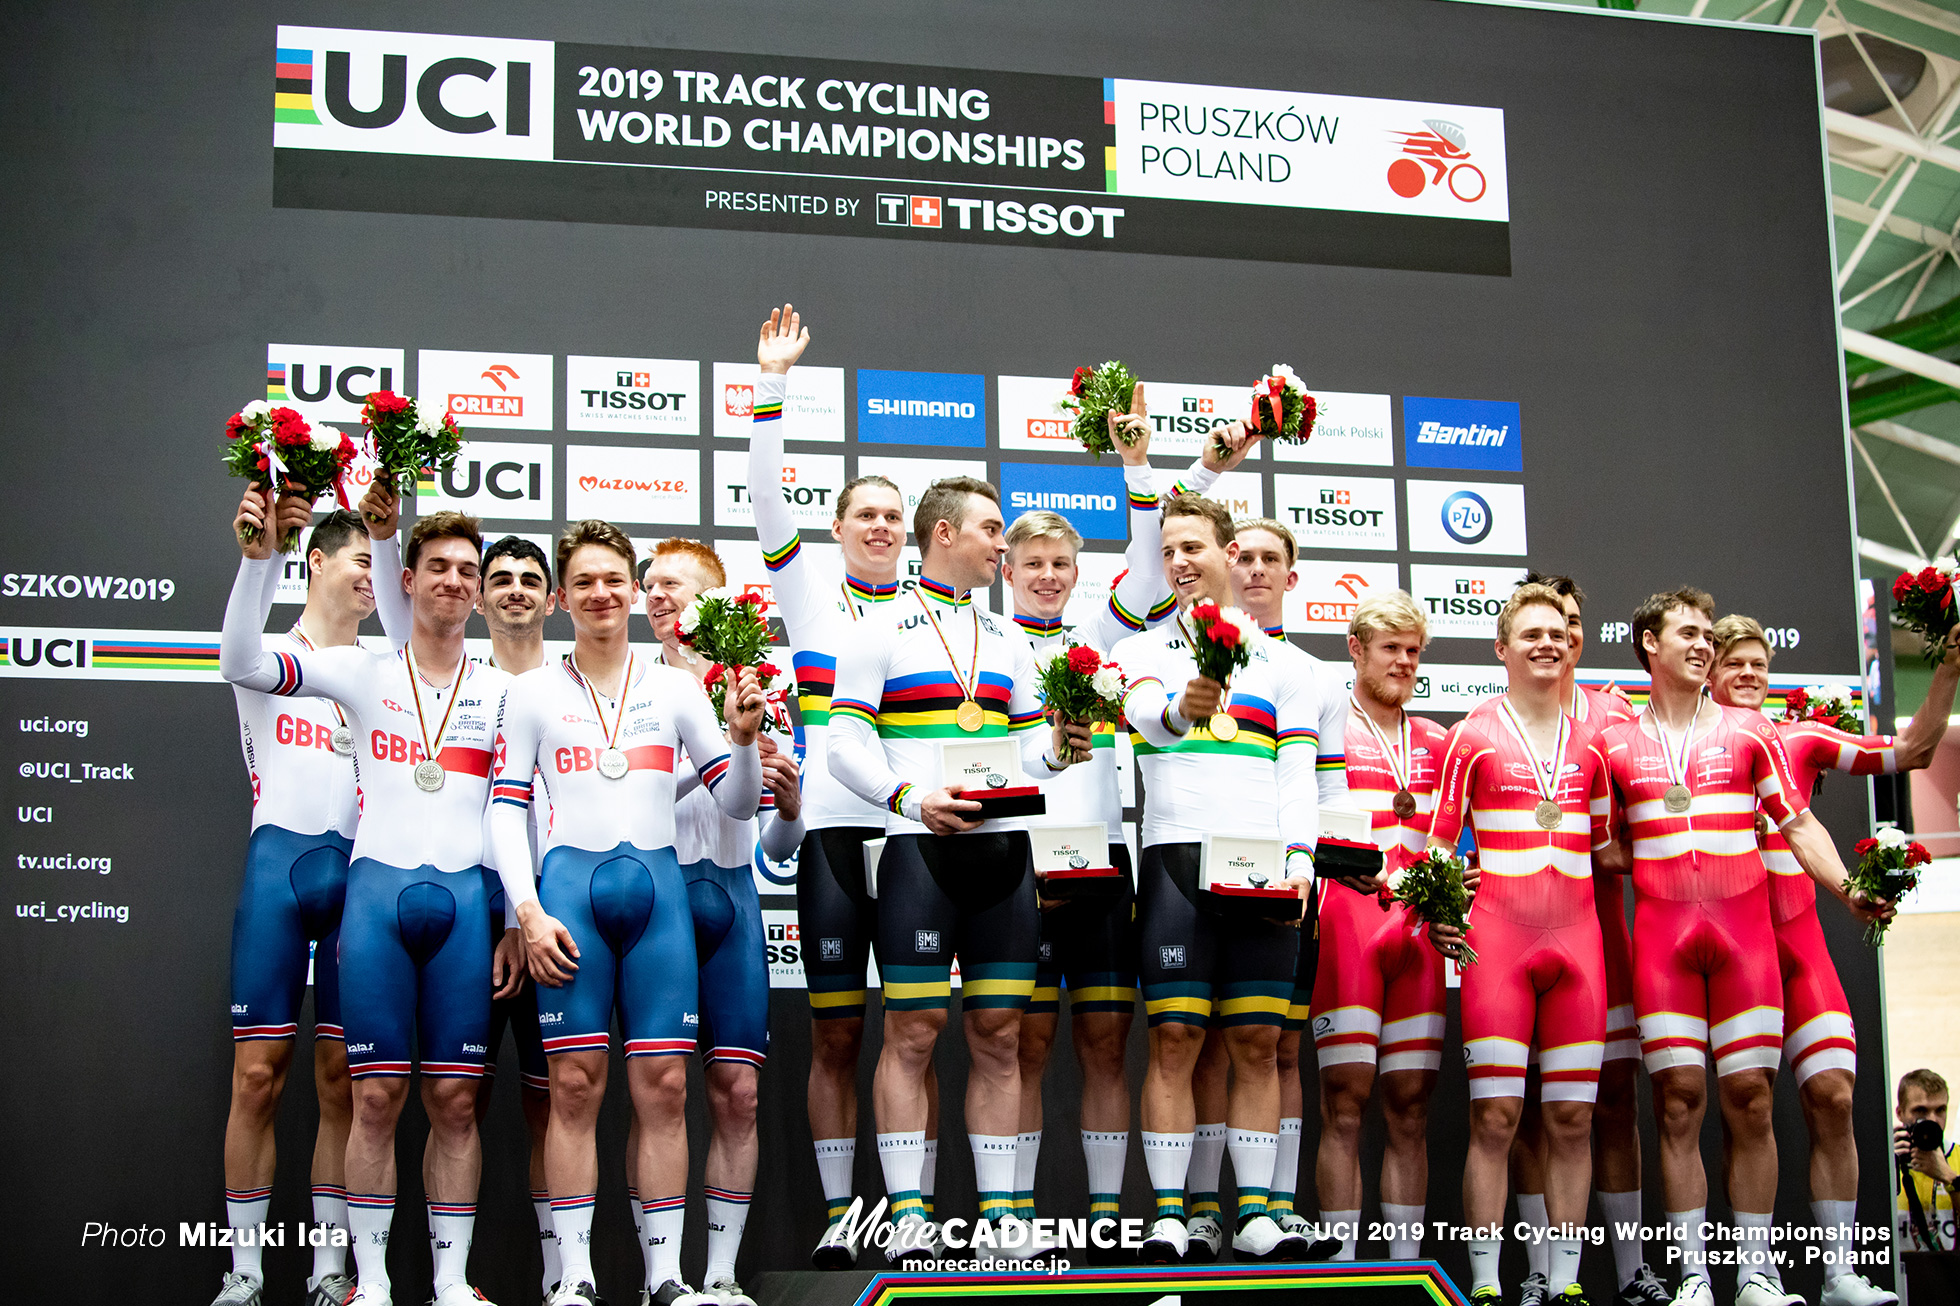 Men's Team Pursuit Final / 2019 Track Cycling World Championships Pruszków, Poland